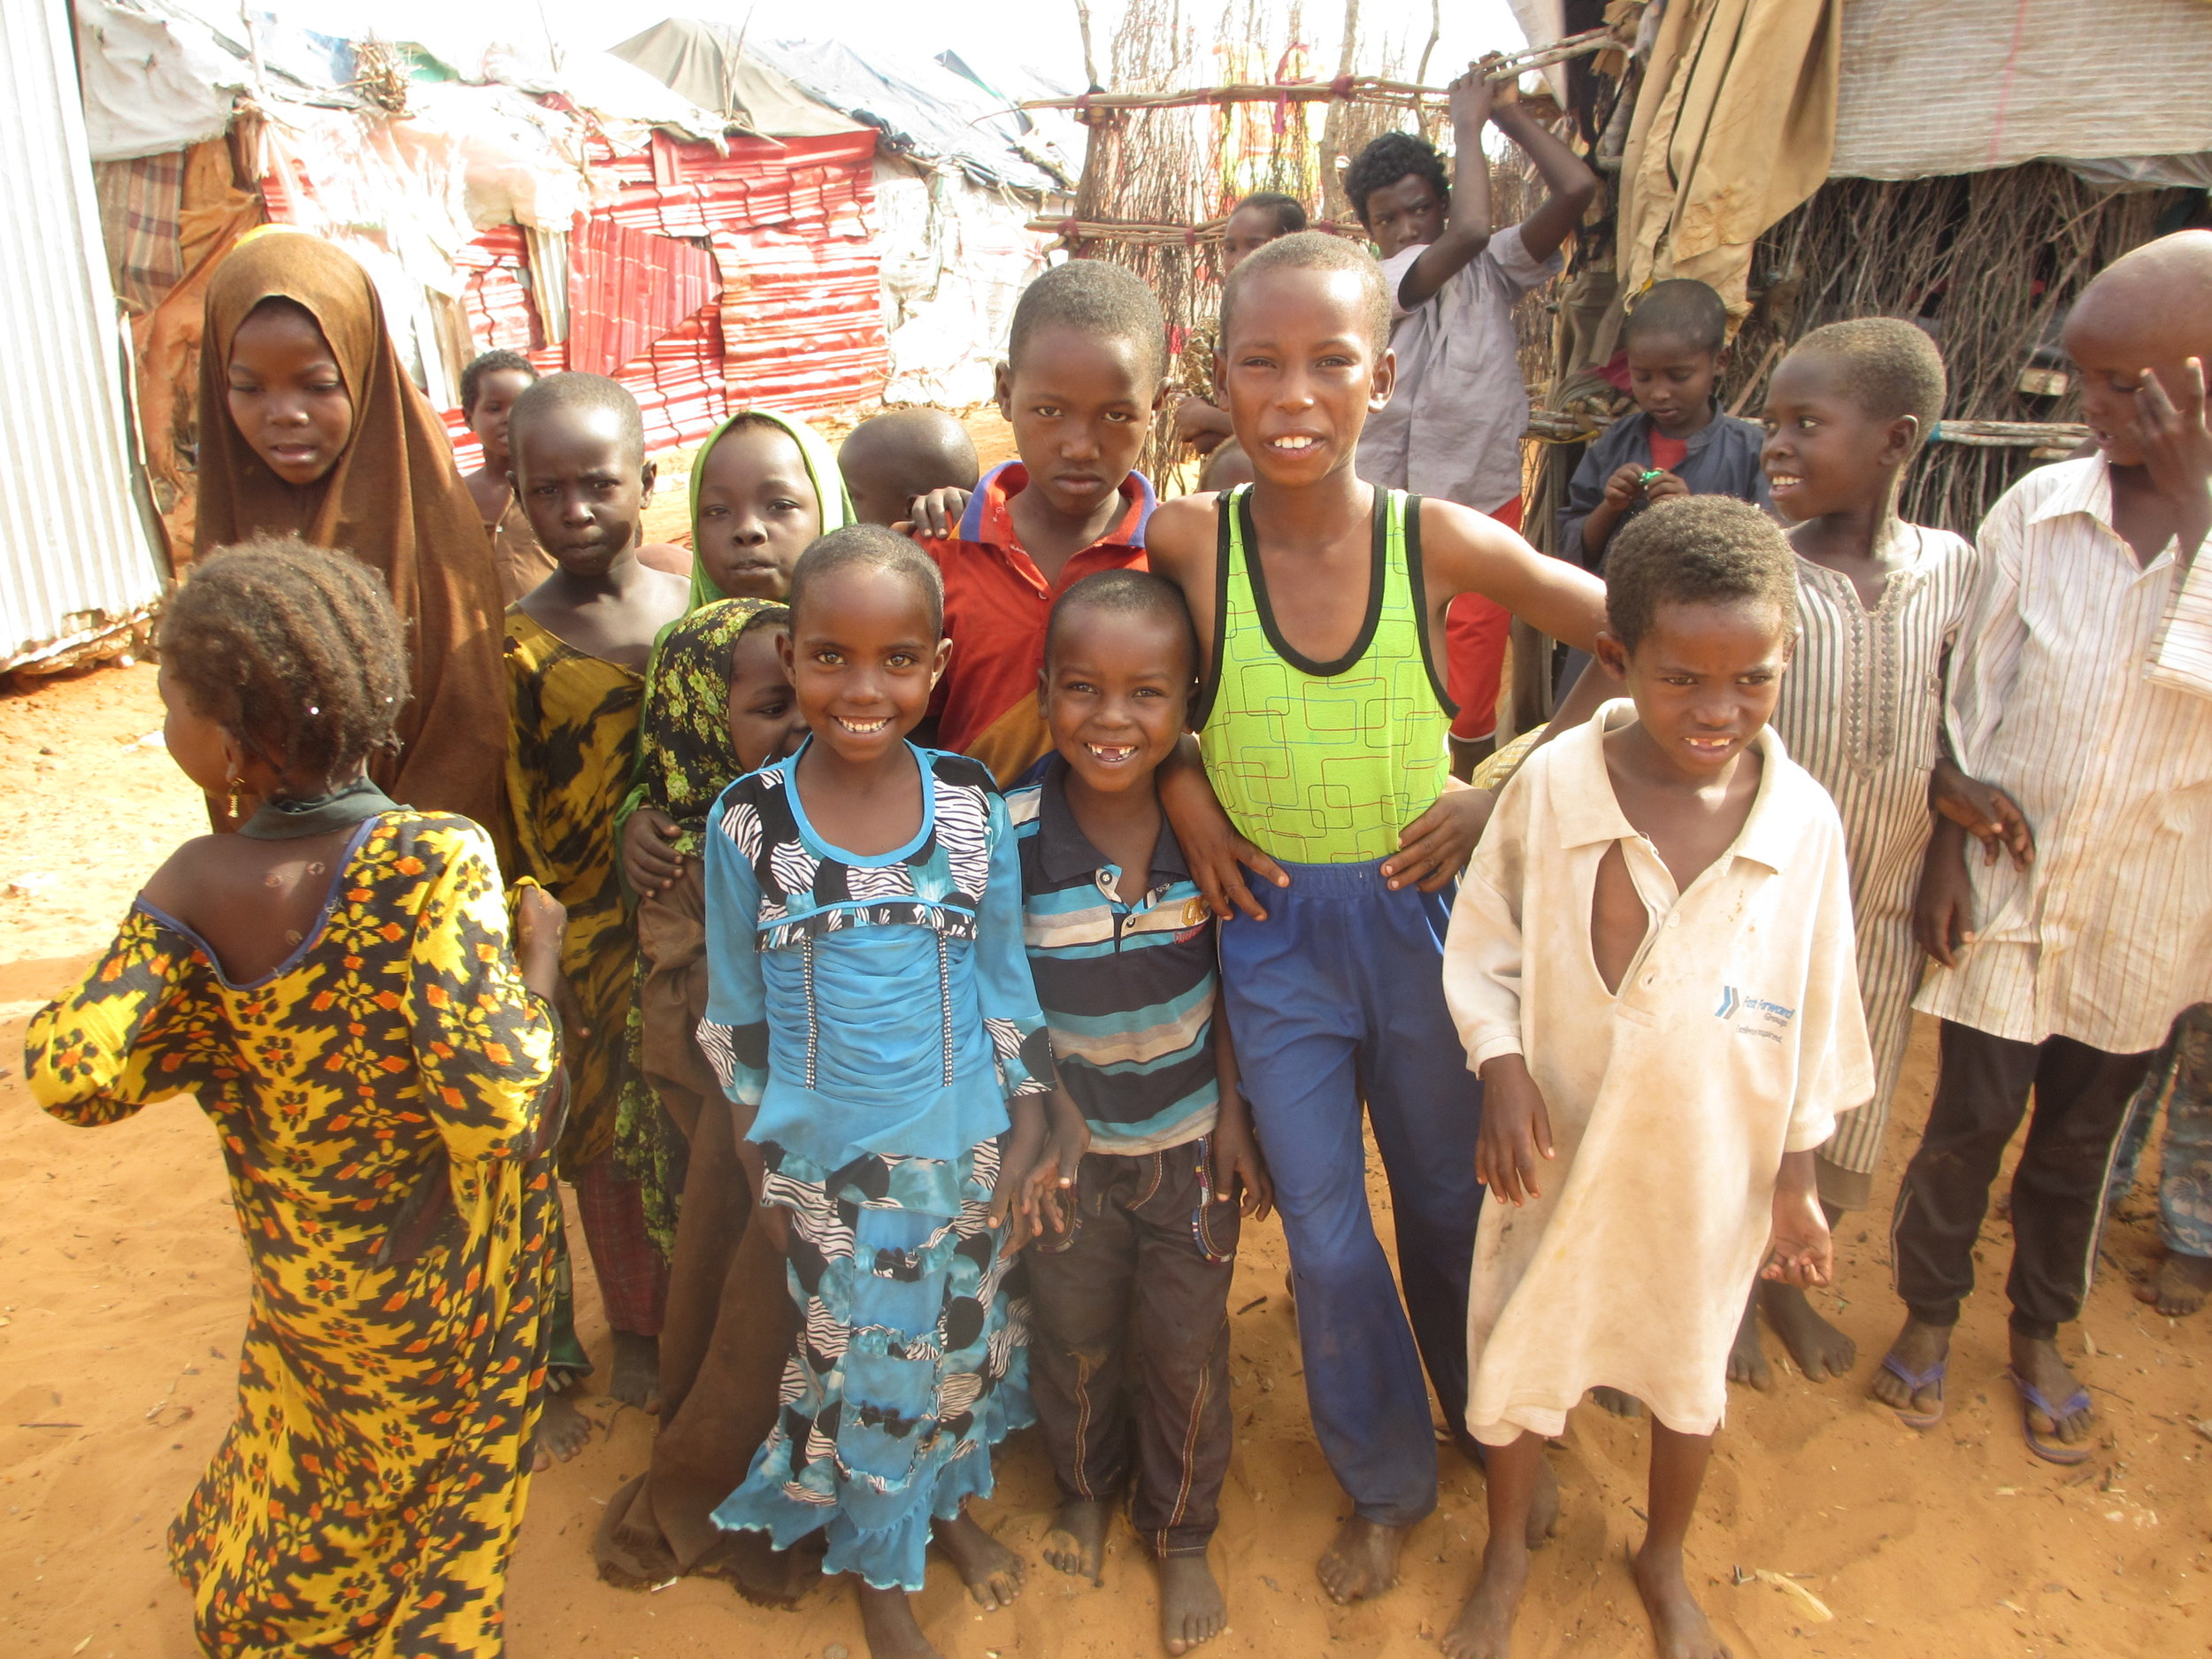 Children at a displacement camp in Kismayo, Somalia, where access to primary education is extremely limited.